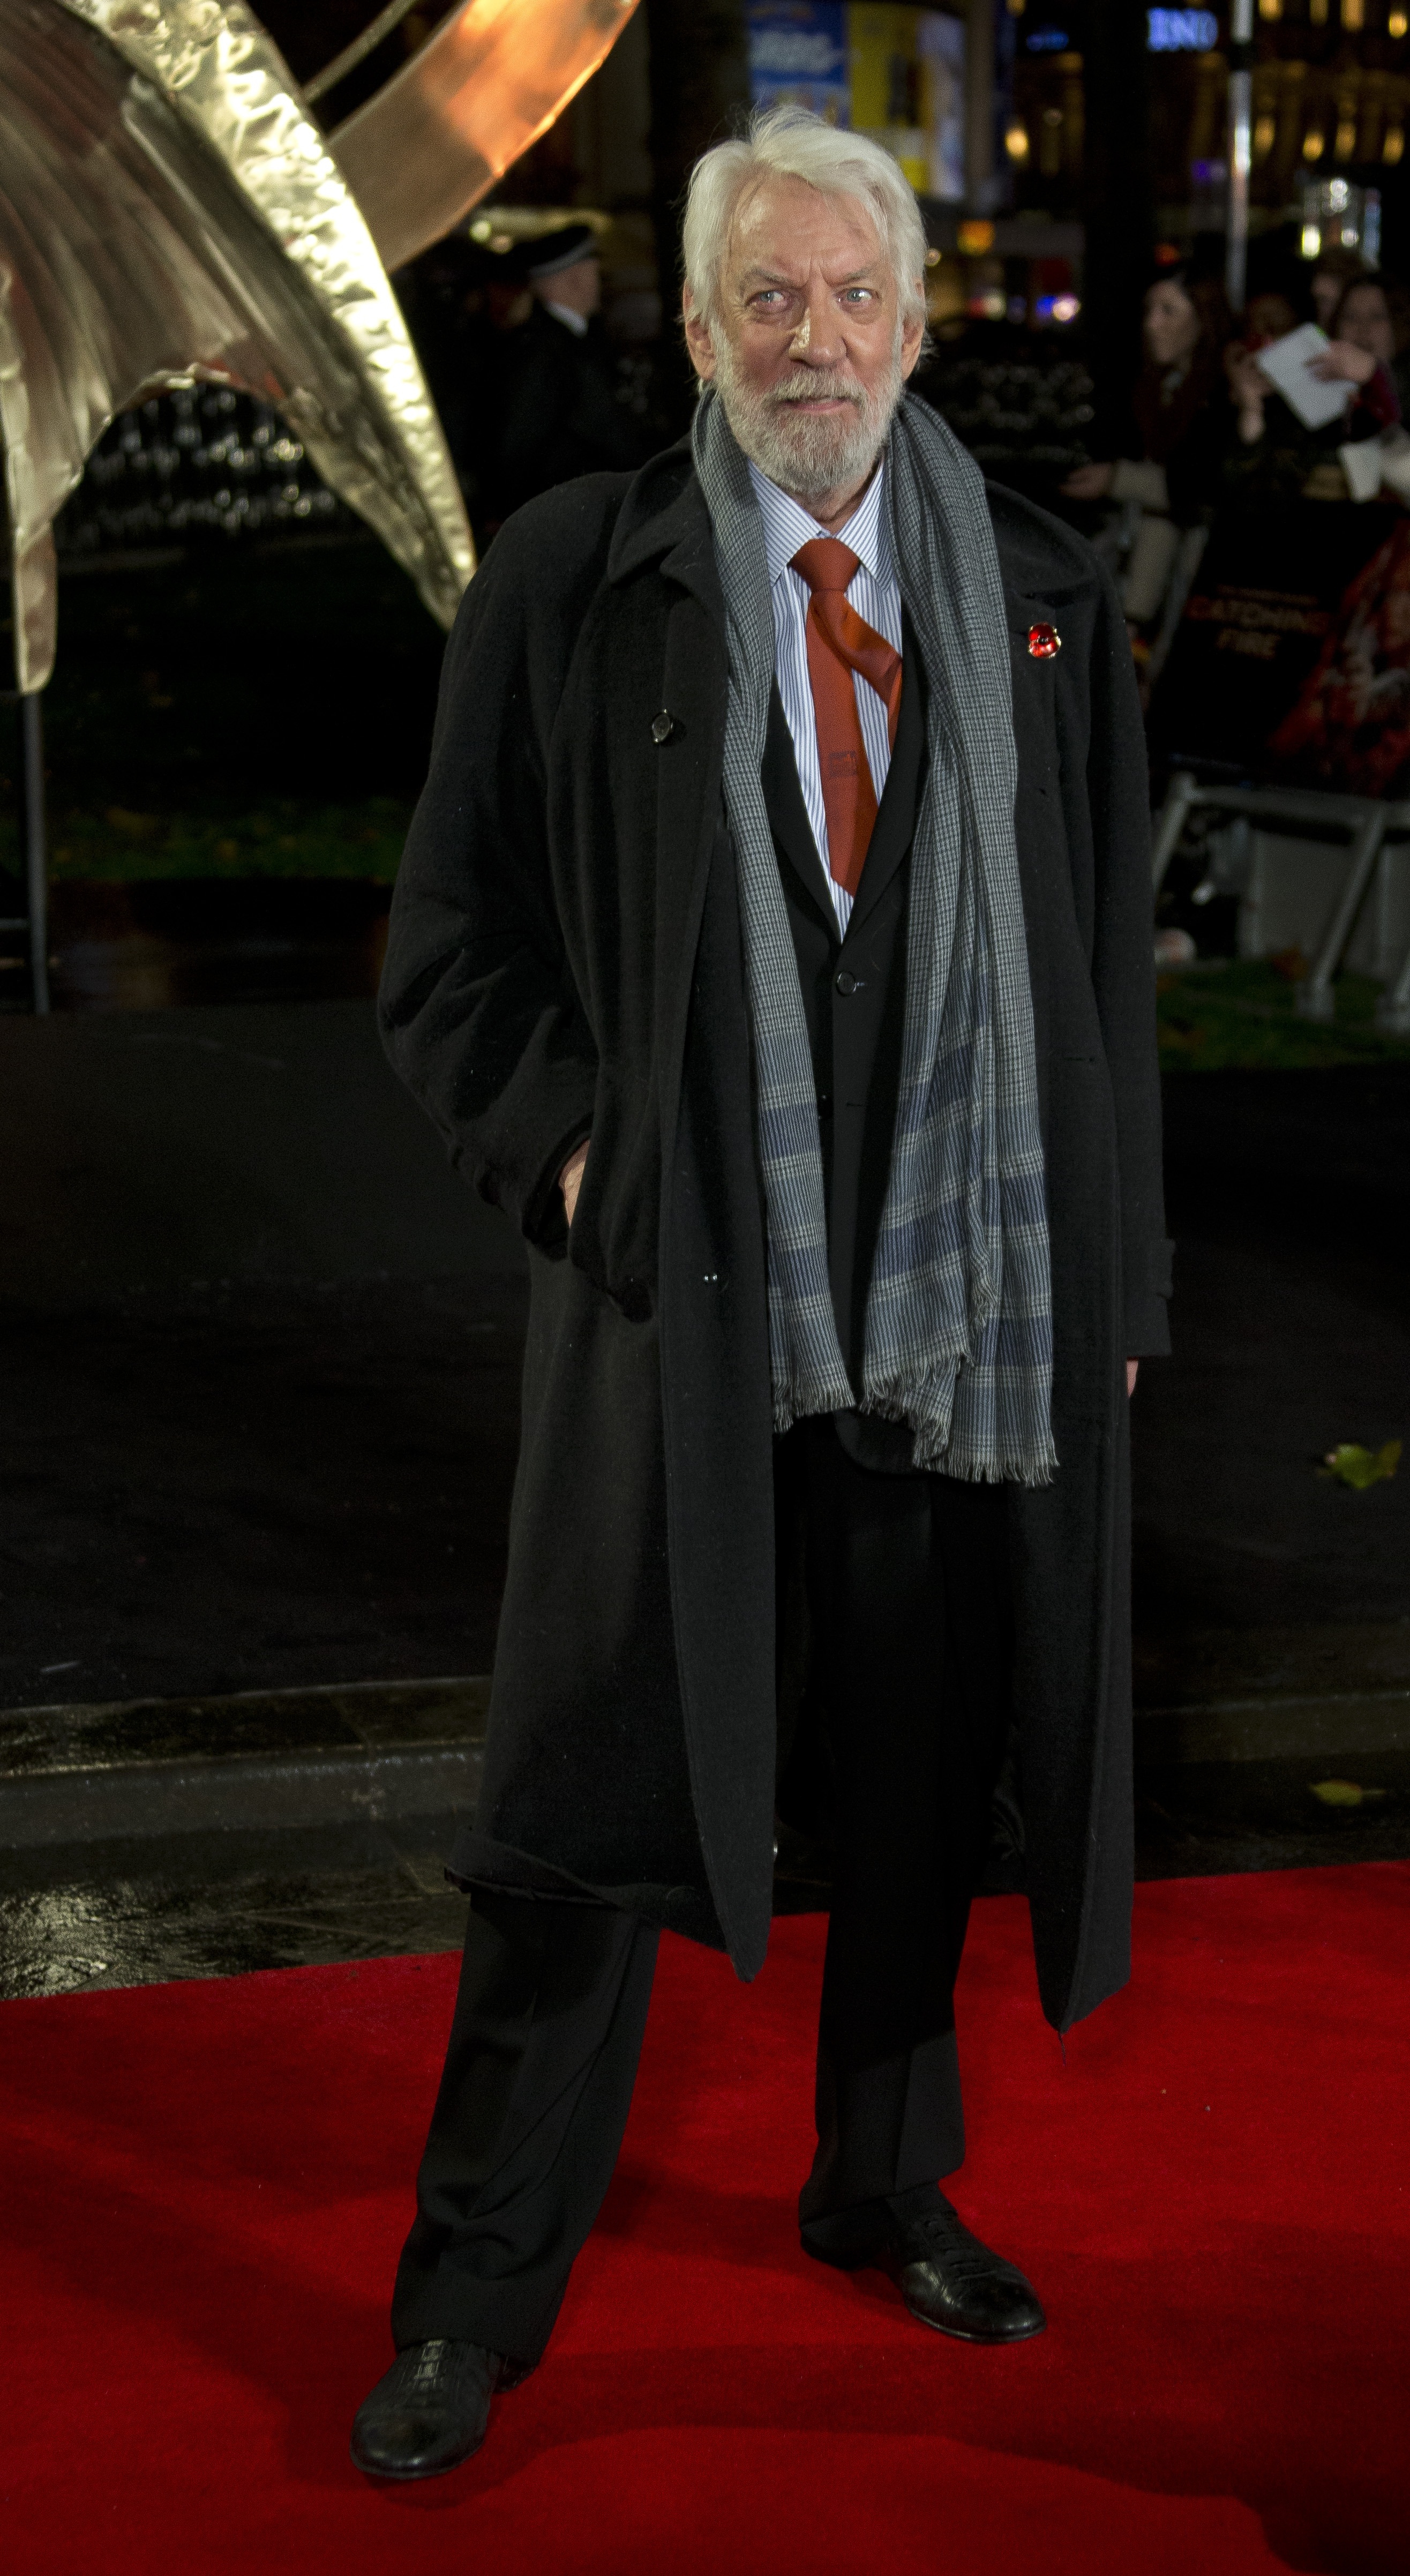 All fired up: Actor Donald Sutherland arrives for the World Premiere of Hunger Games: Catching Fire, at a central London cinema on Monday.